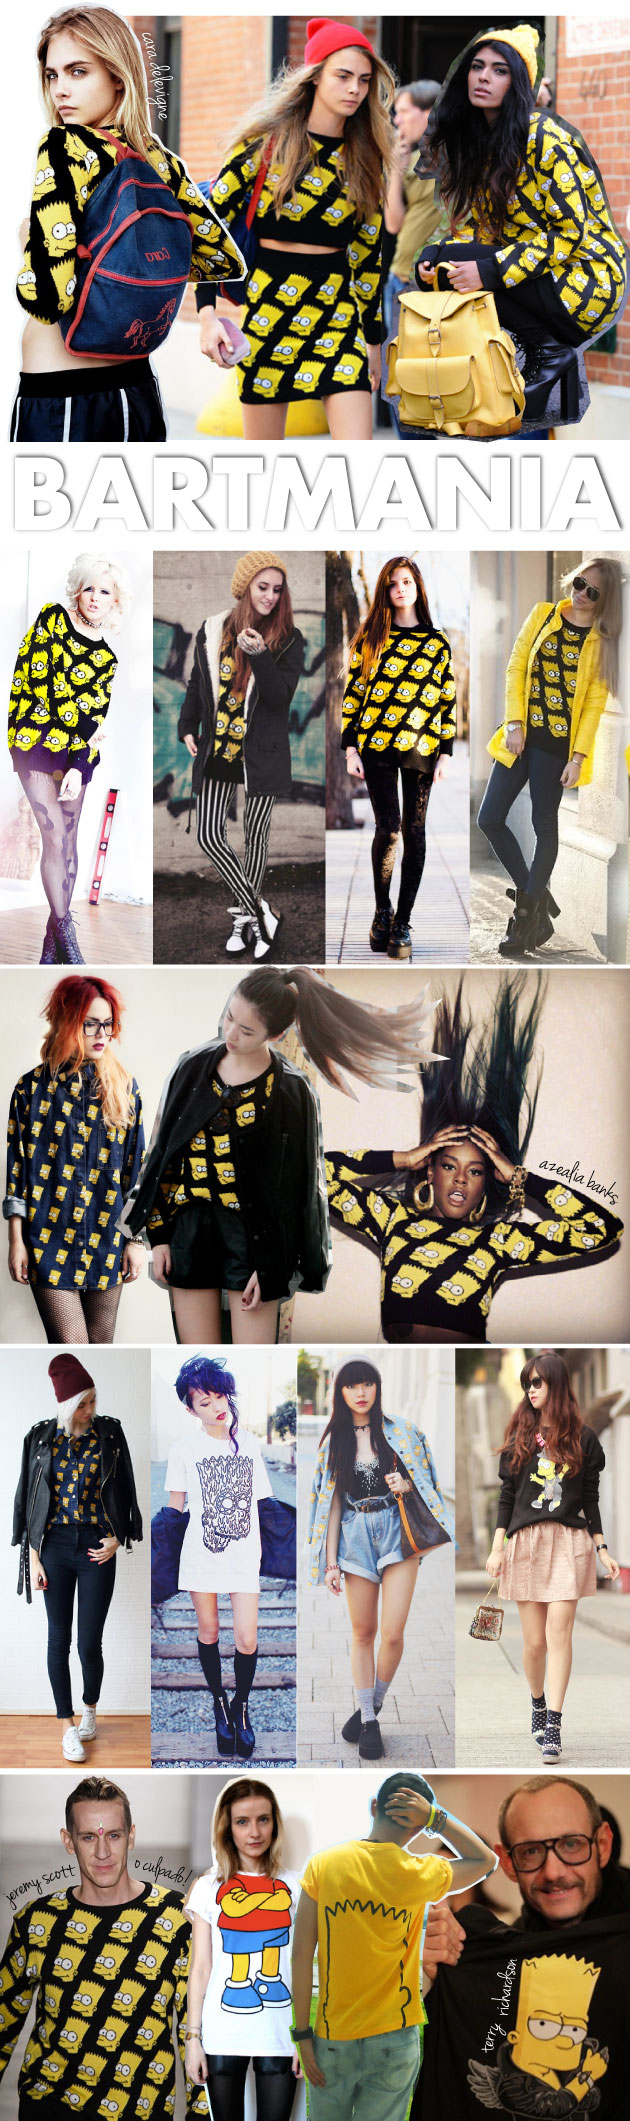 tendencia-bart-simpson-jeremy-scott-cara-delevigne-trend-the-simpsons-bart-print-estampa-pull-pulover-moletom-sweatshirt